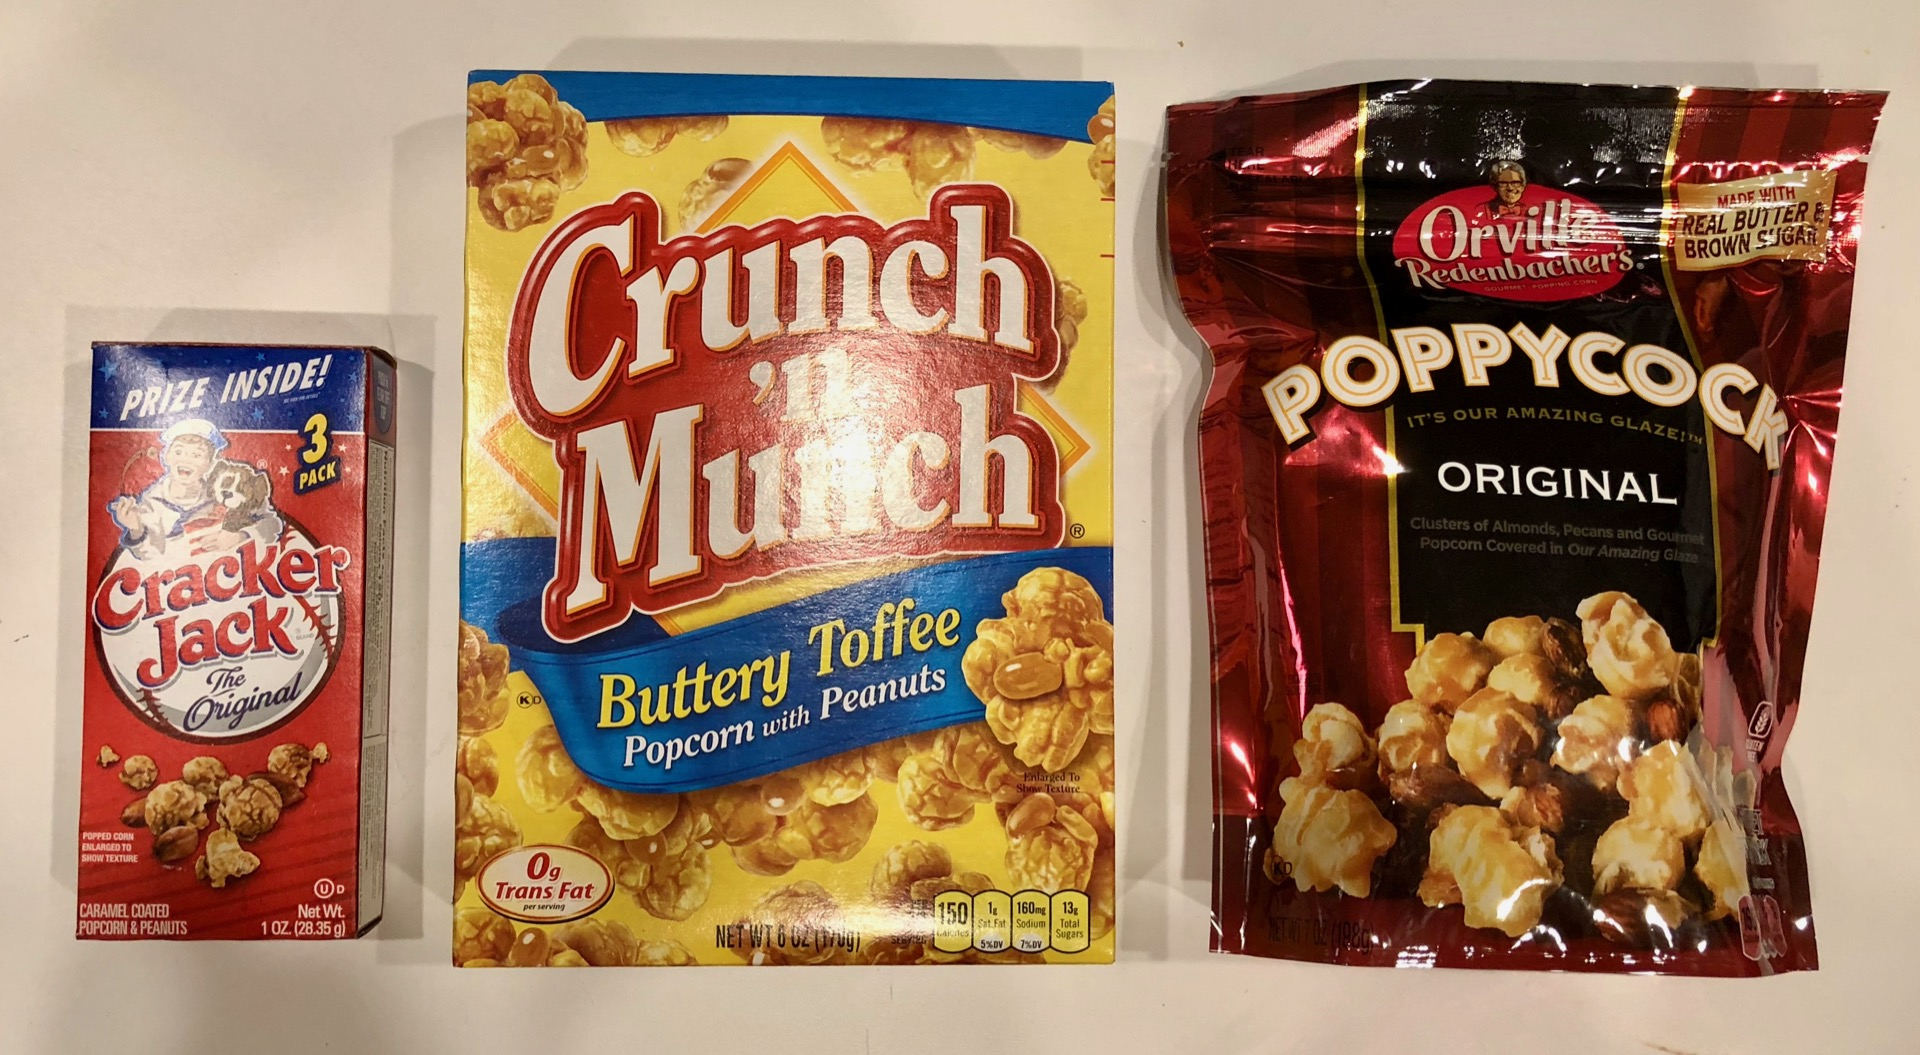 Popcorn-based snacks